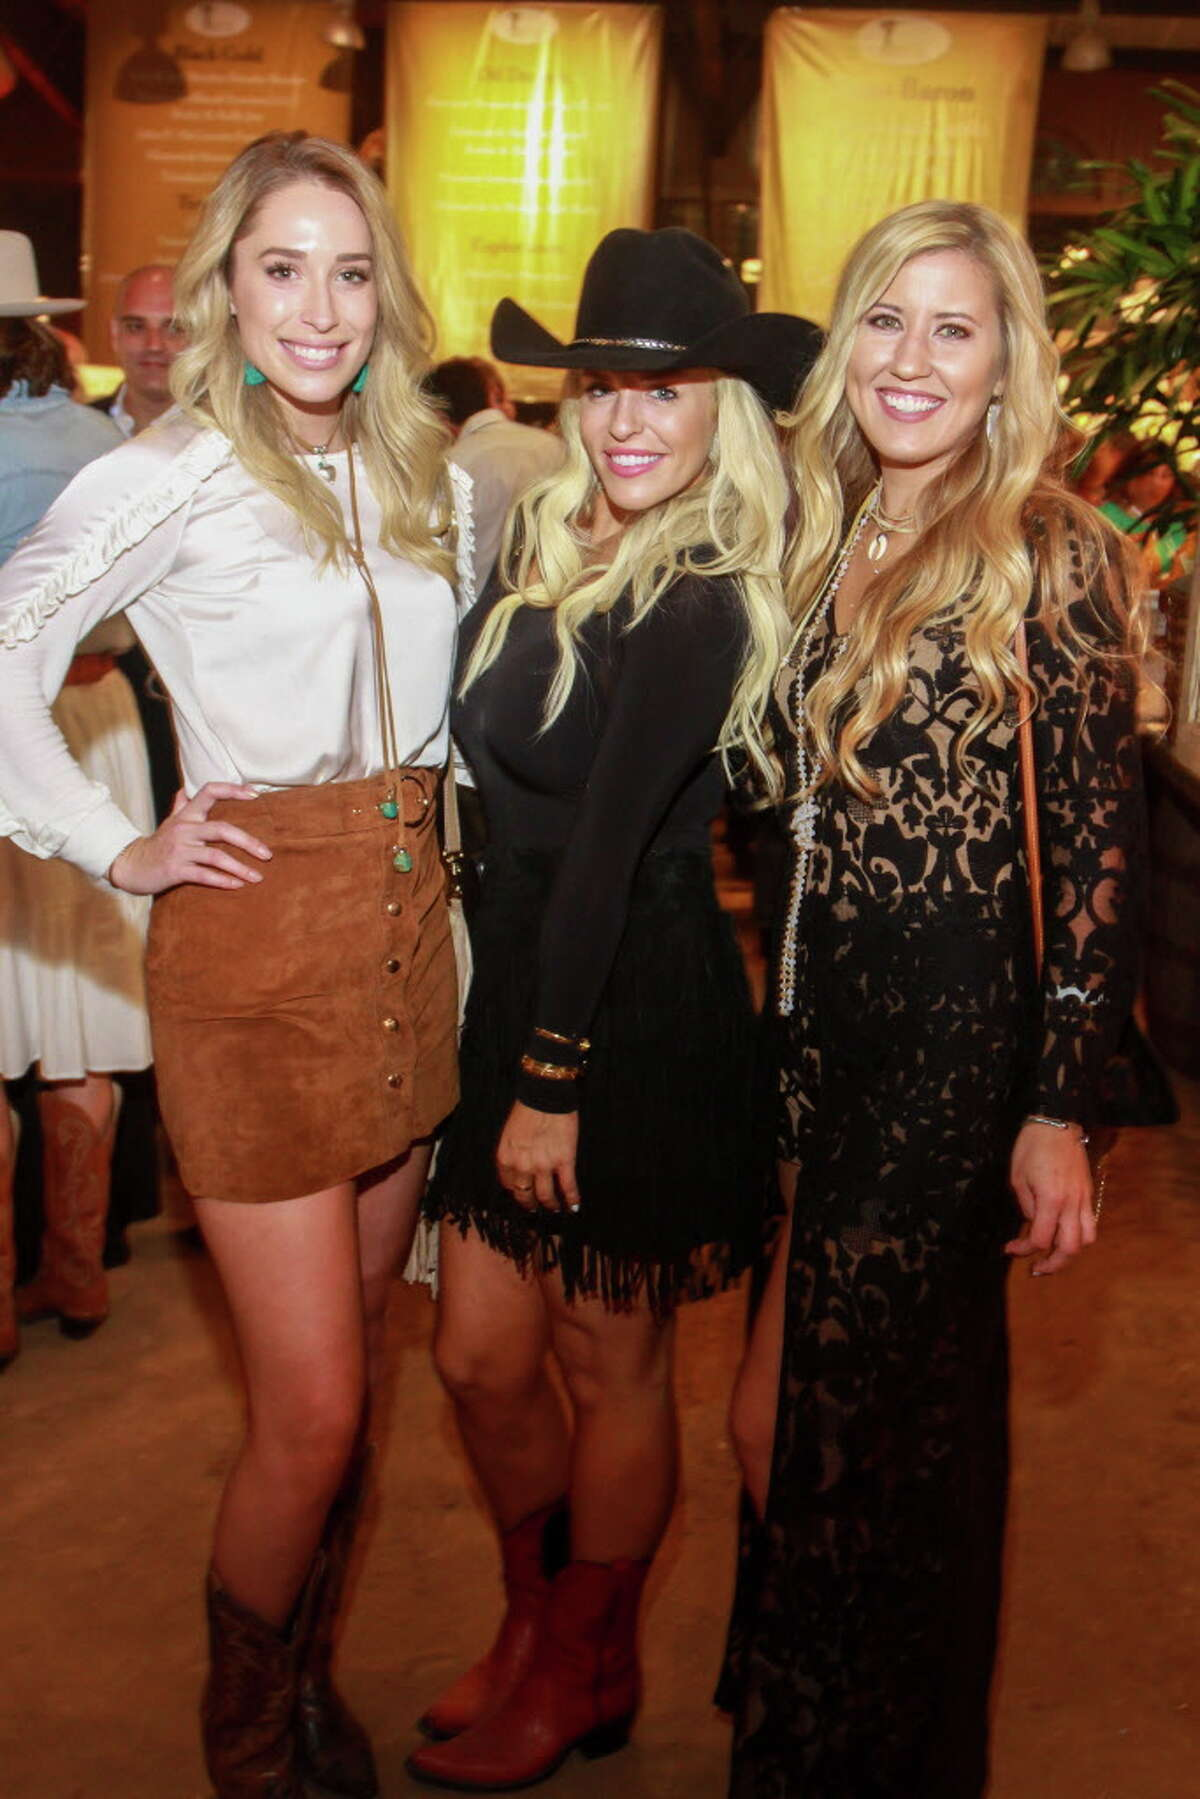 Megan LaVallie, from left, Caroline Looke and Madison Highland at the Cattle Baron's Ball.